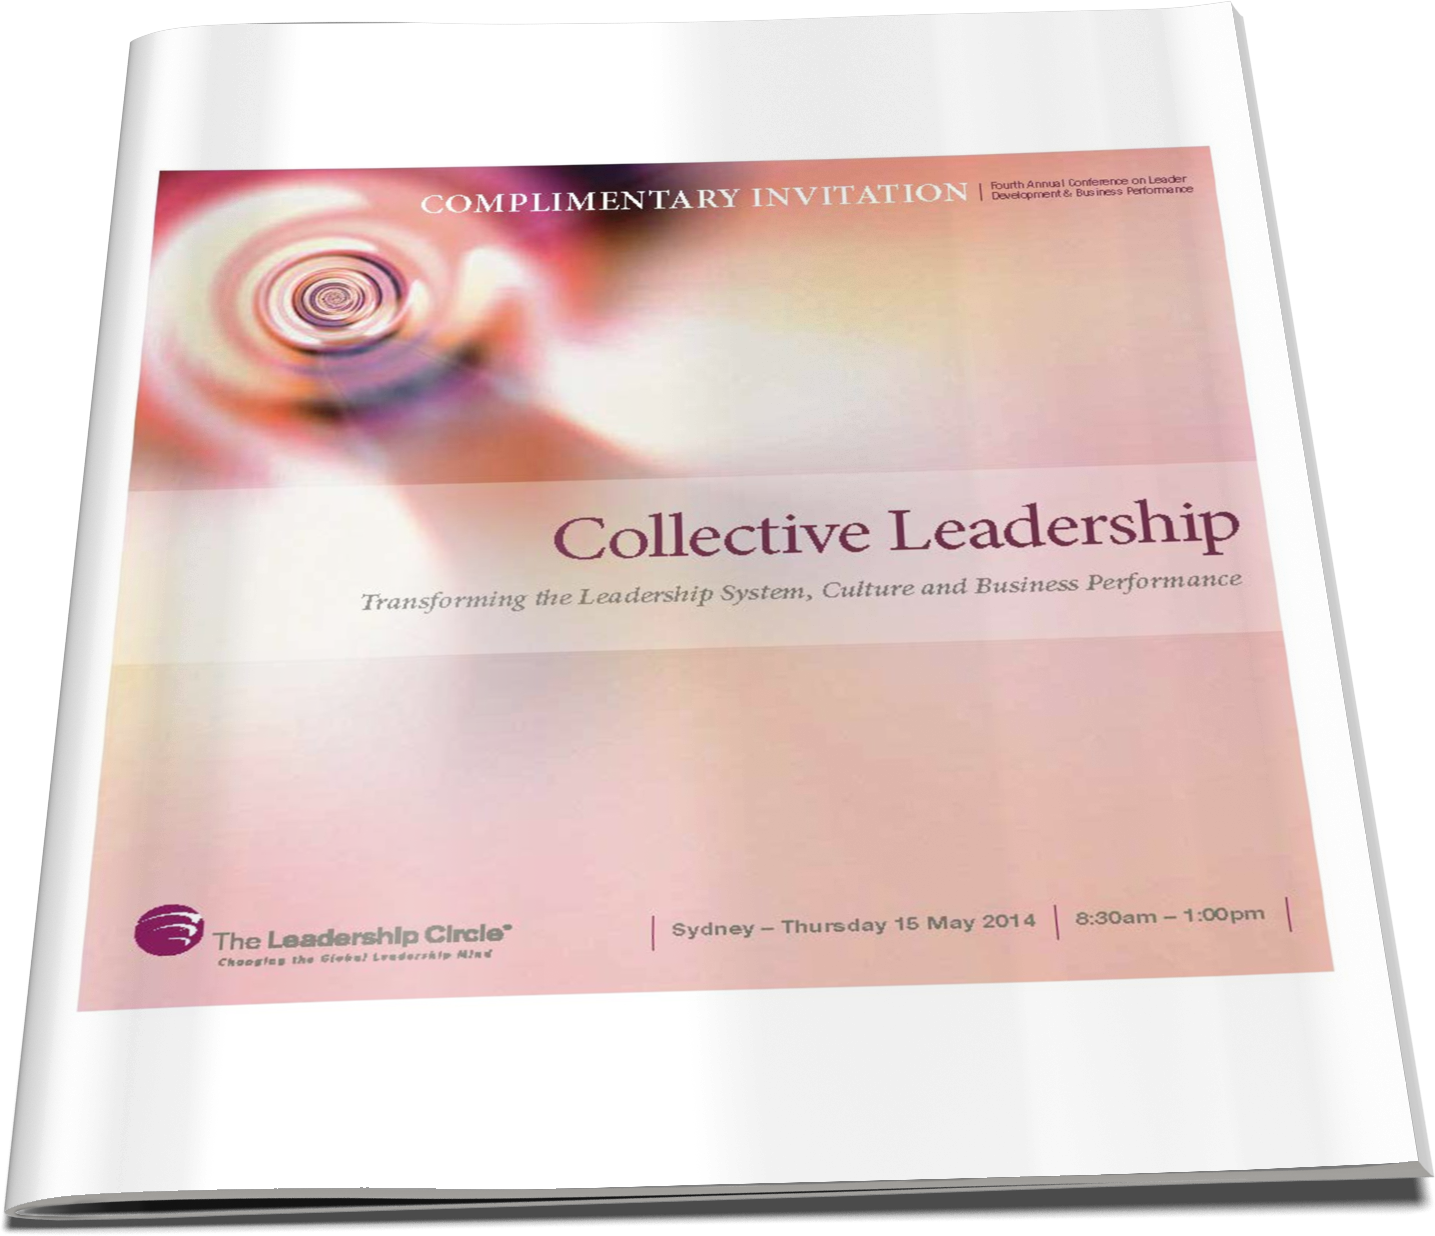 15 May, 2014 - Collective Leadership: Transforming the Leadership System, Culture & Business Performance